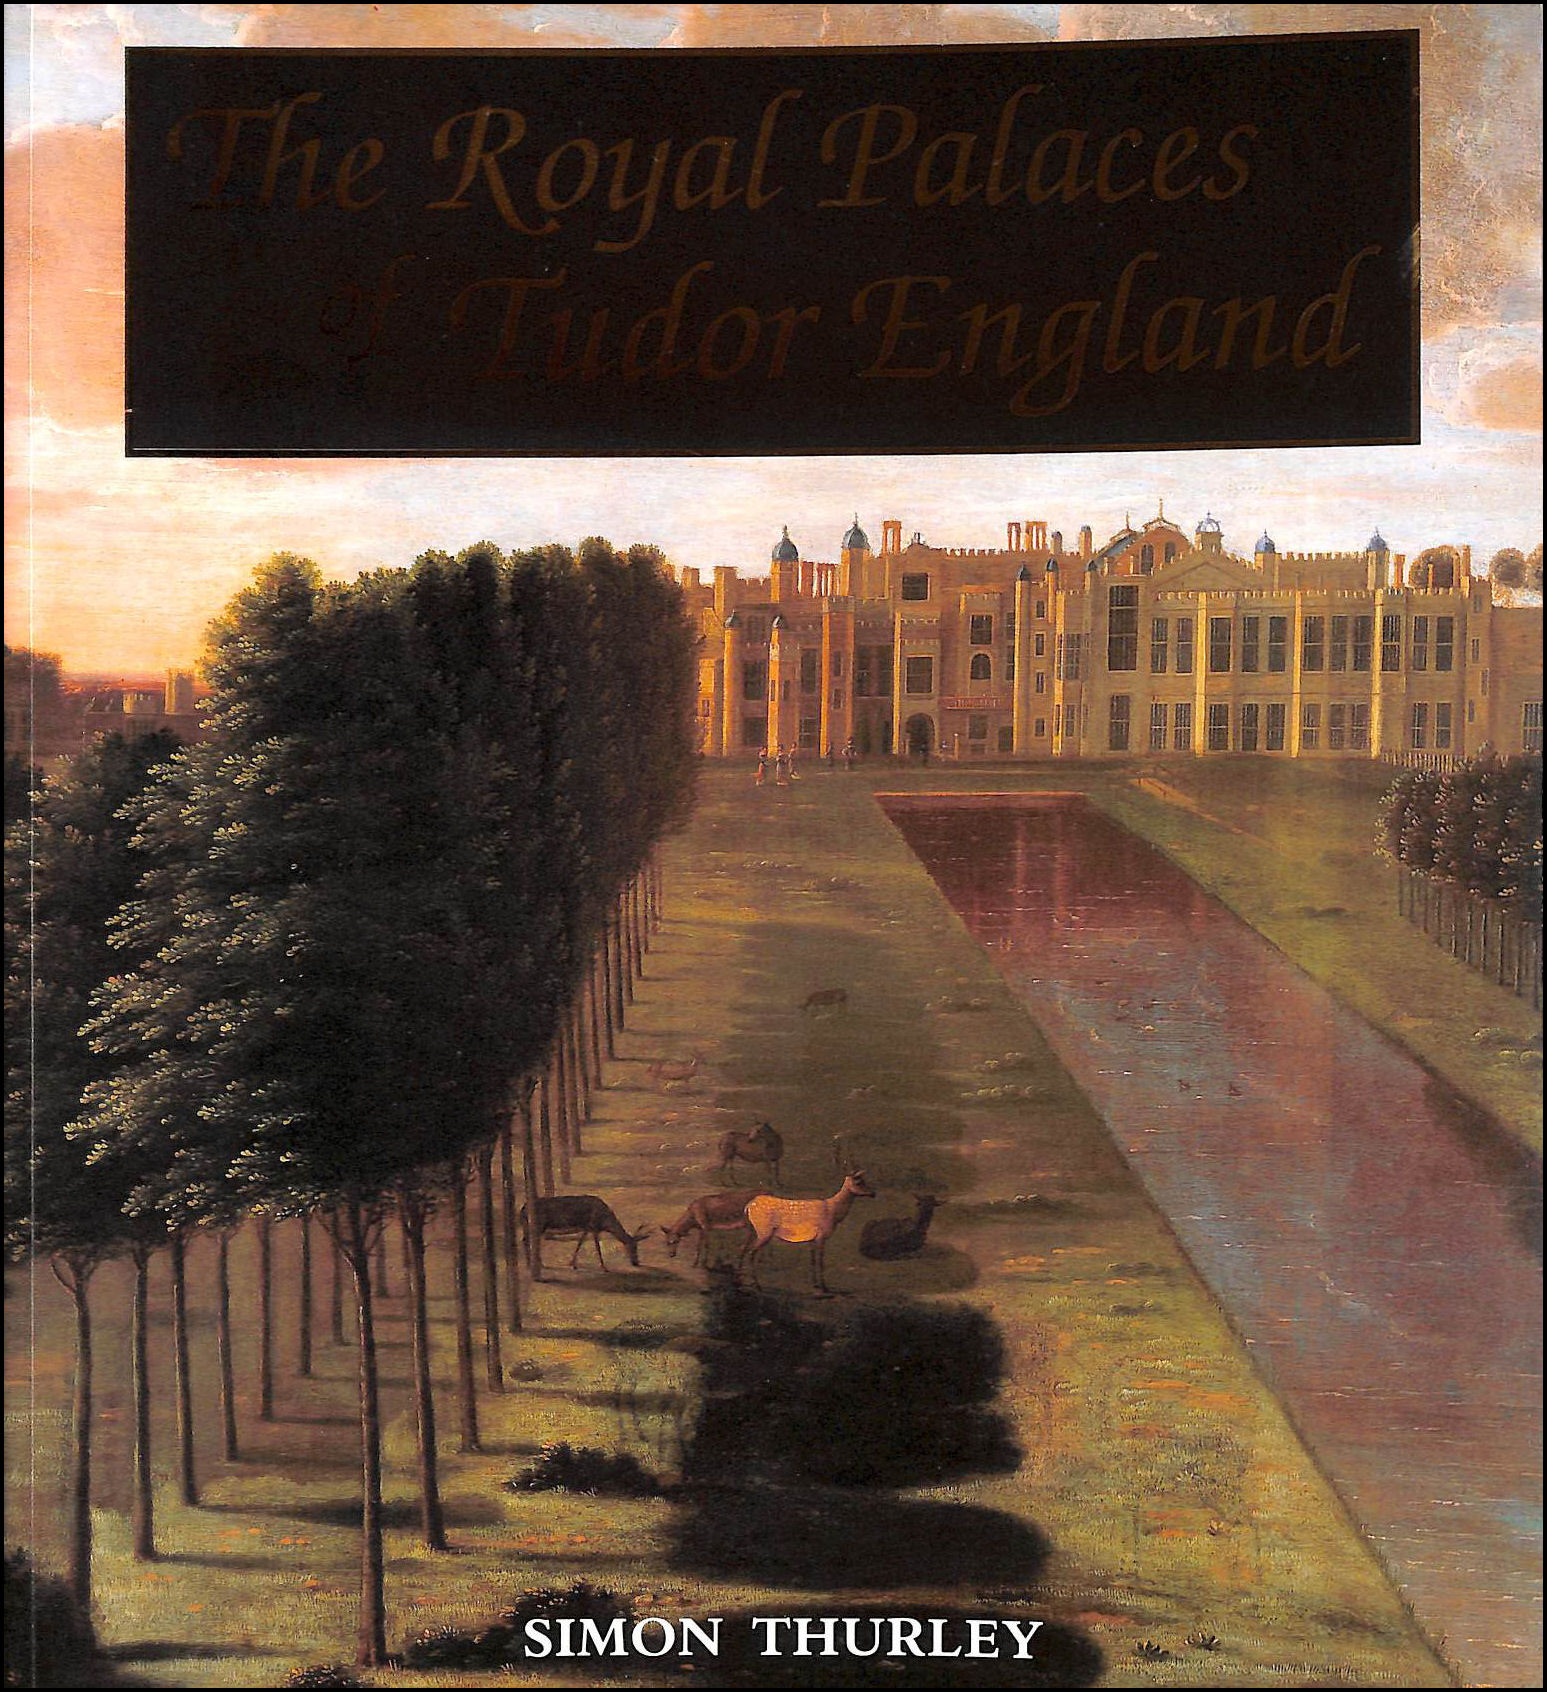 The Royal Palaces of Tudor England: Architecture and Court Life, 1460-1547 (The Paul Mellon Centre for Studies in British Art), Thurley, Simon